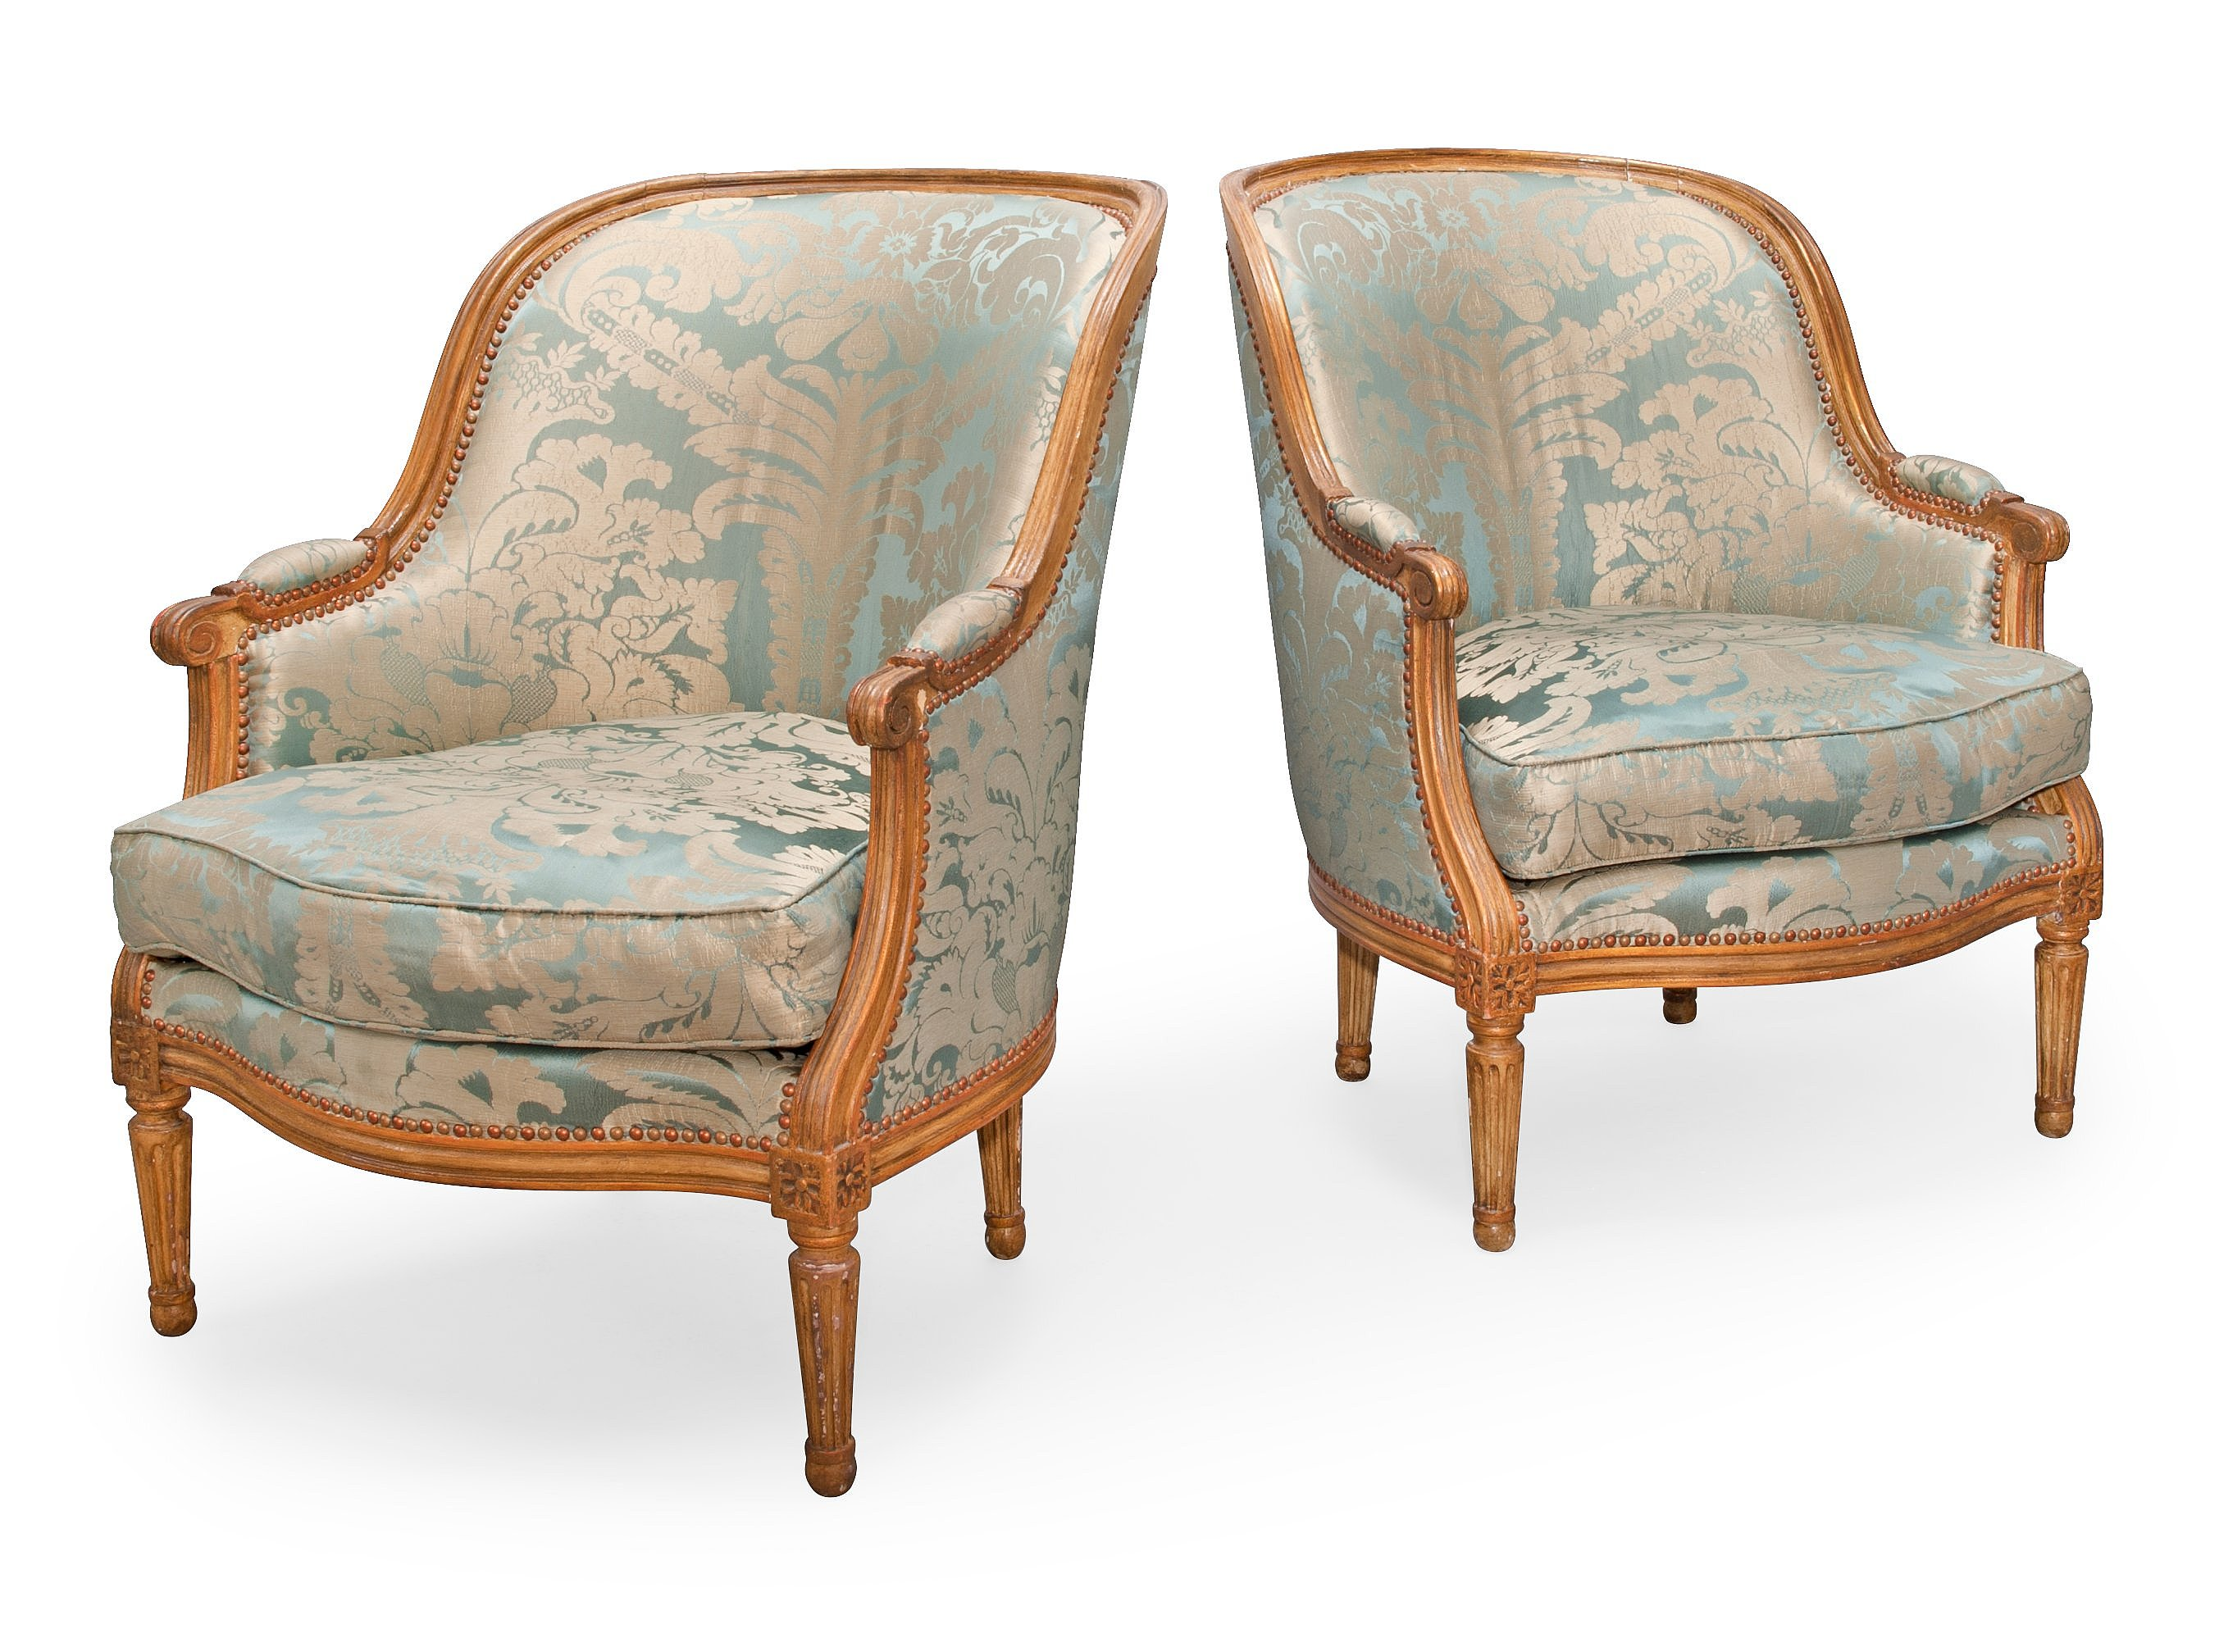 A PAIR OF BERGRE CHAIRS  Bukowskis